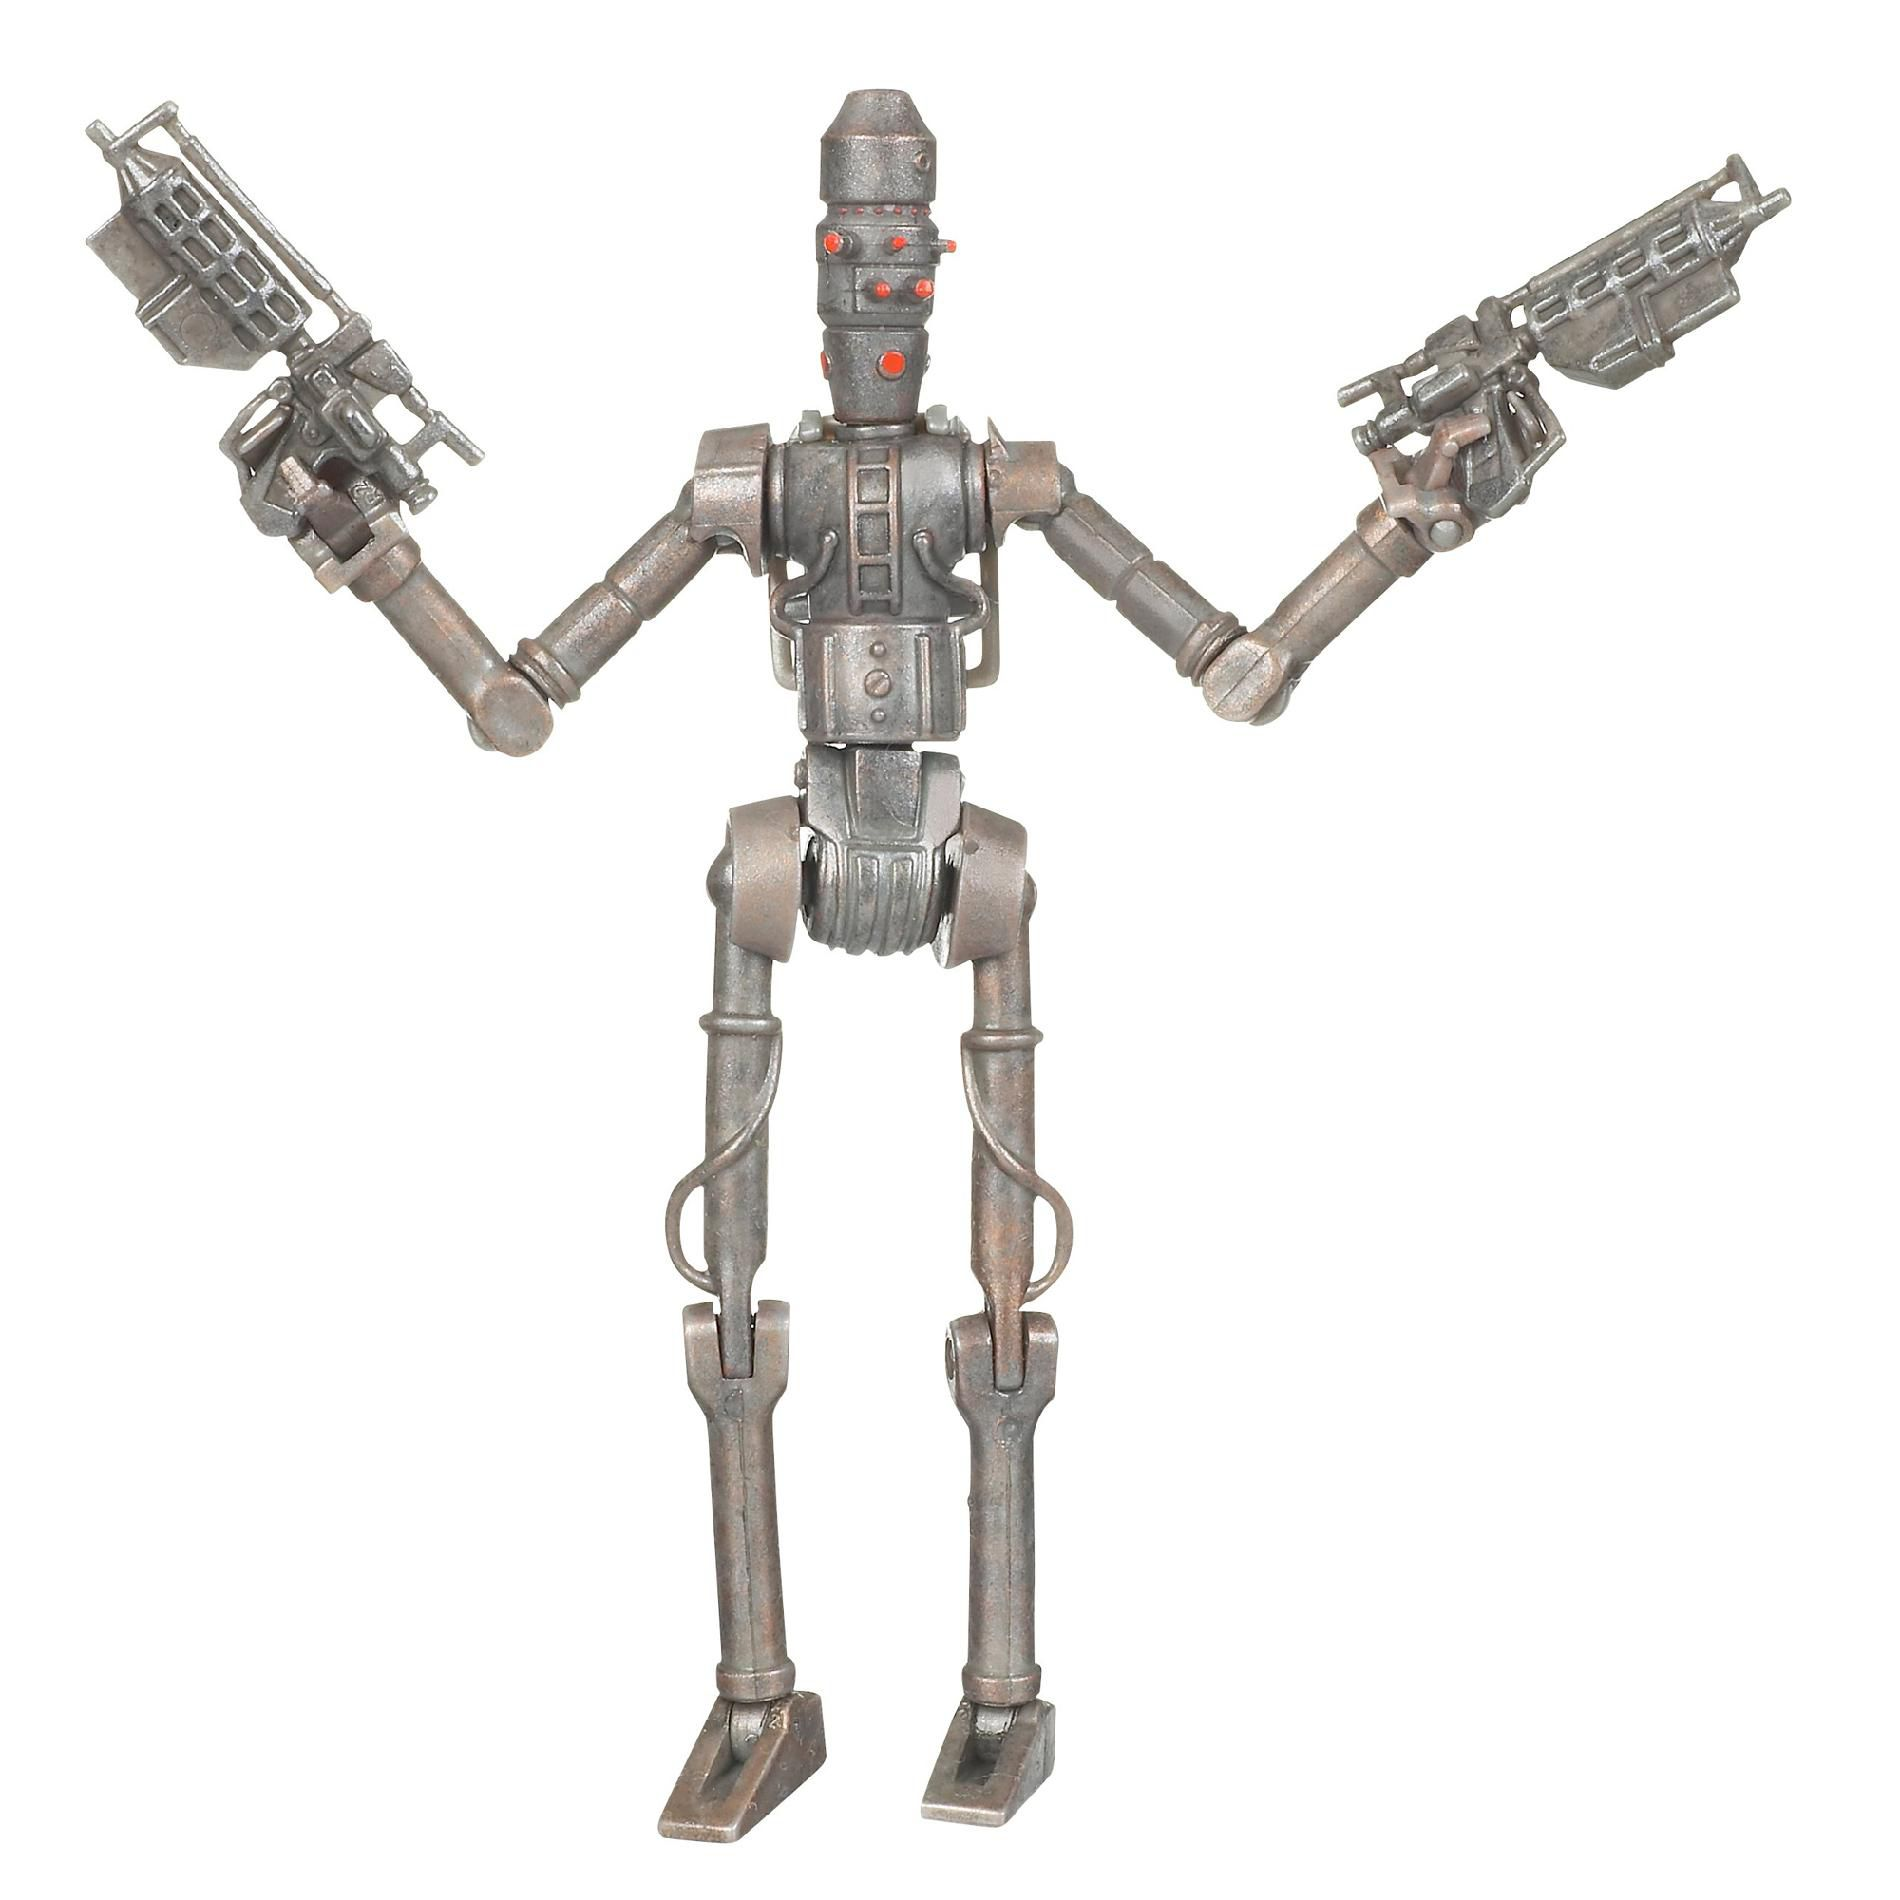 Hasbro Star Wars Clone Wars Animated Action Figure No. 18 IG-86 Assassin Droid PartNumber: 004W024338611024P